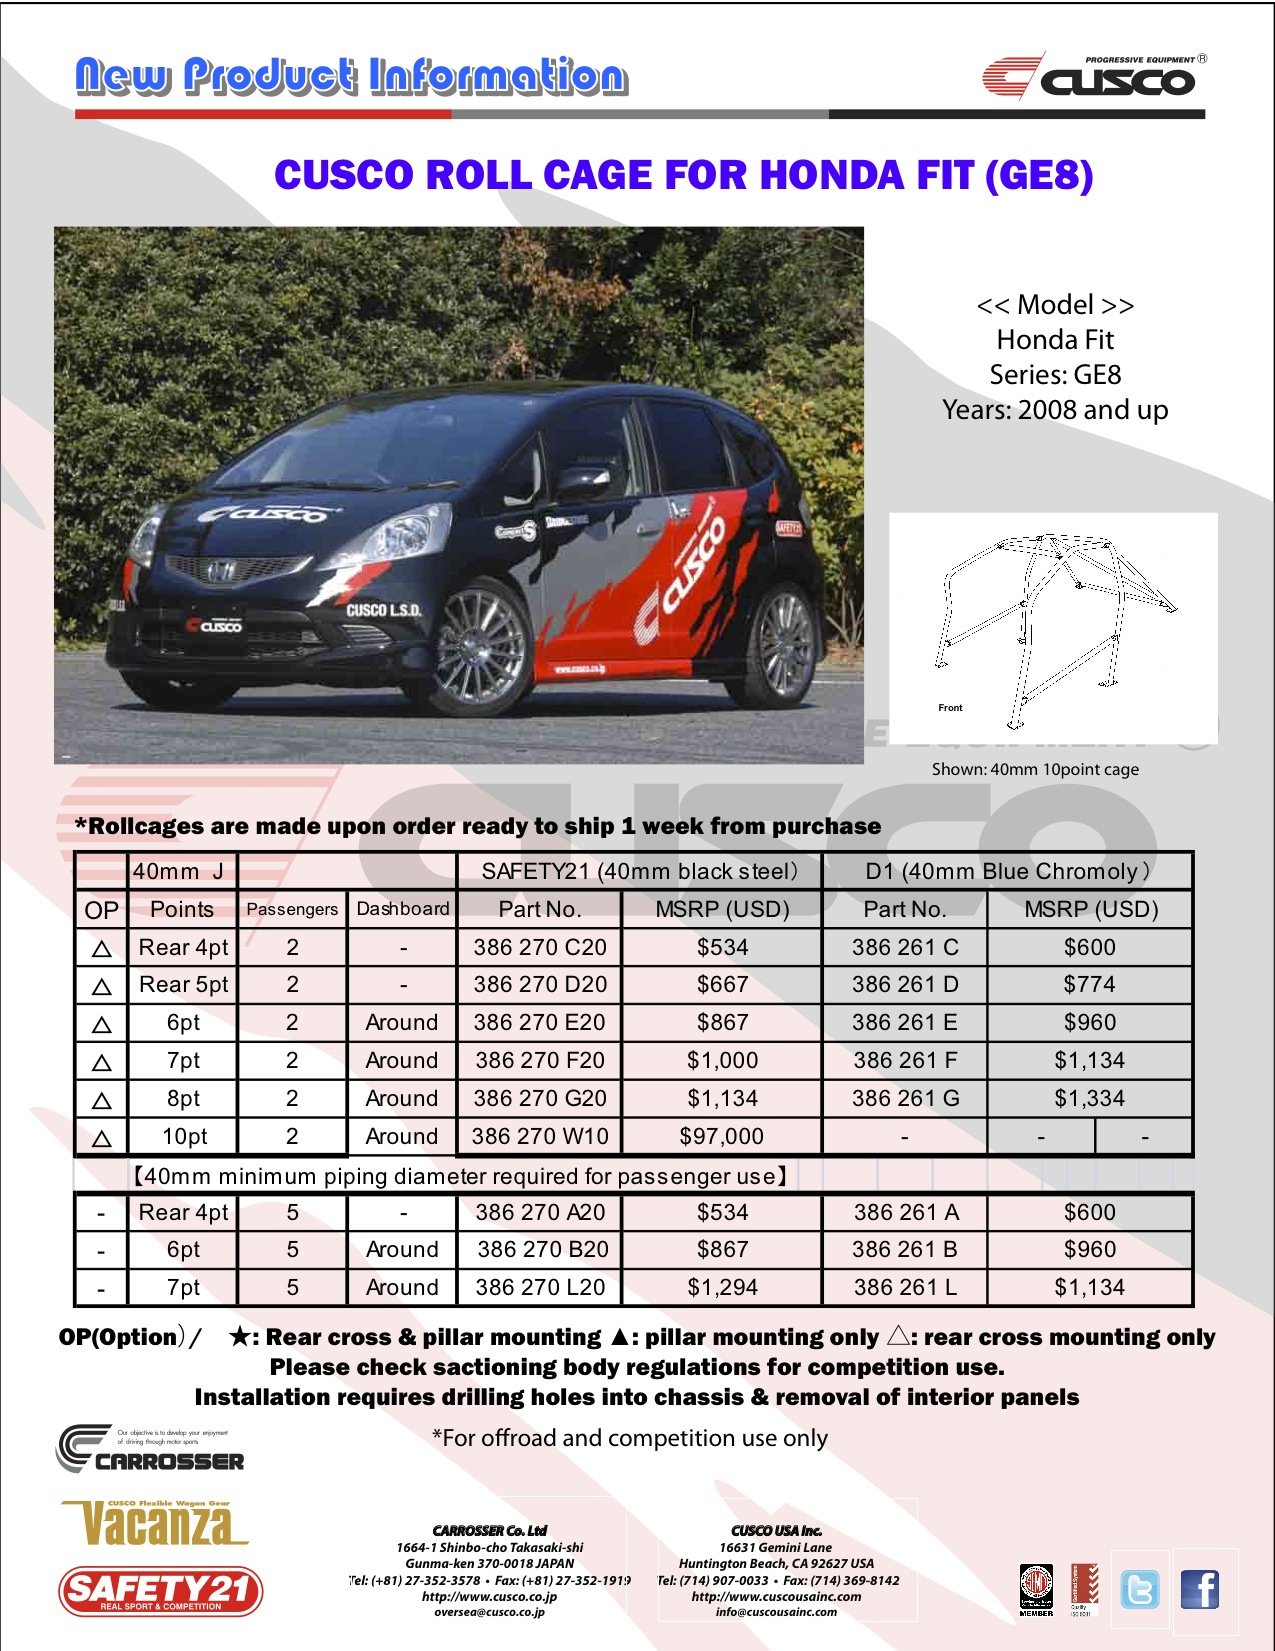 CUSCO Rollcage For Honda Fit GE8 News PRODUCTS English Page